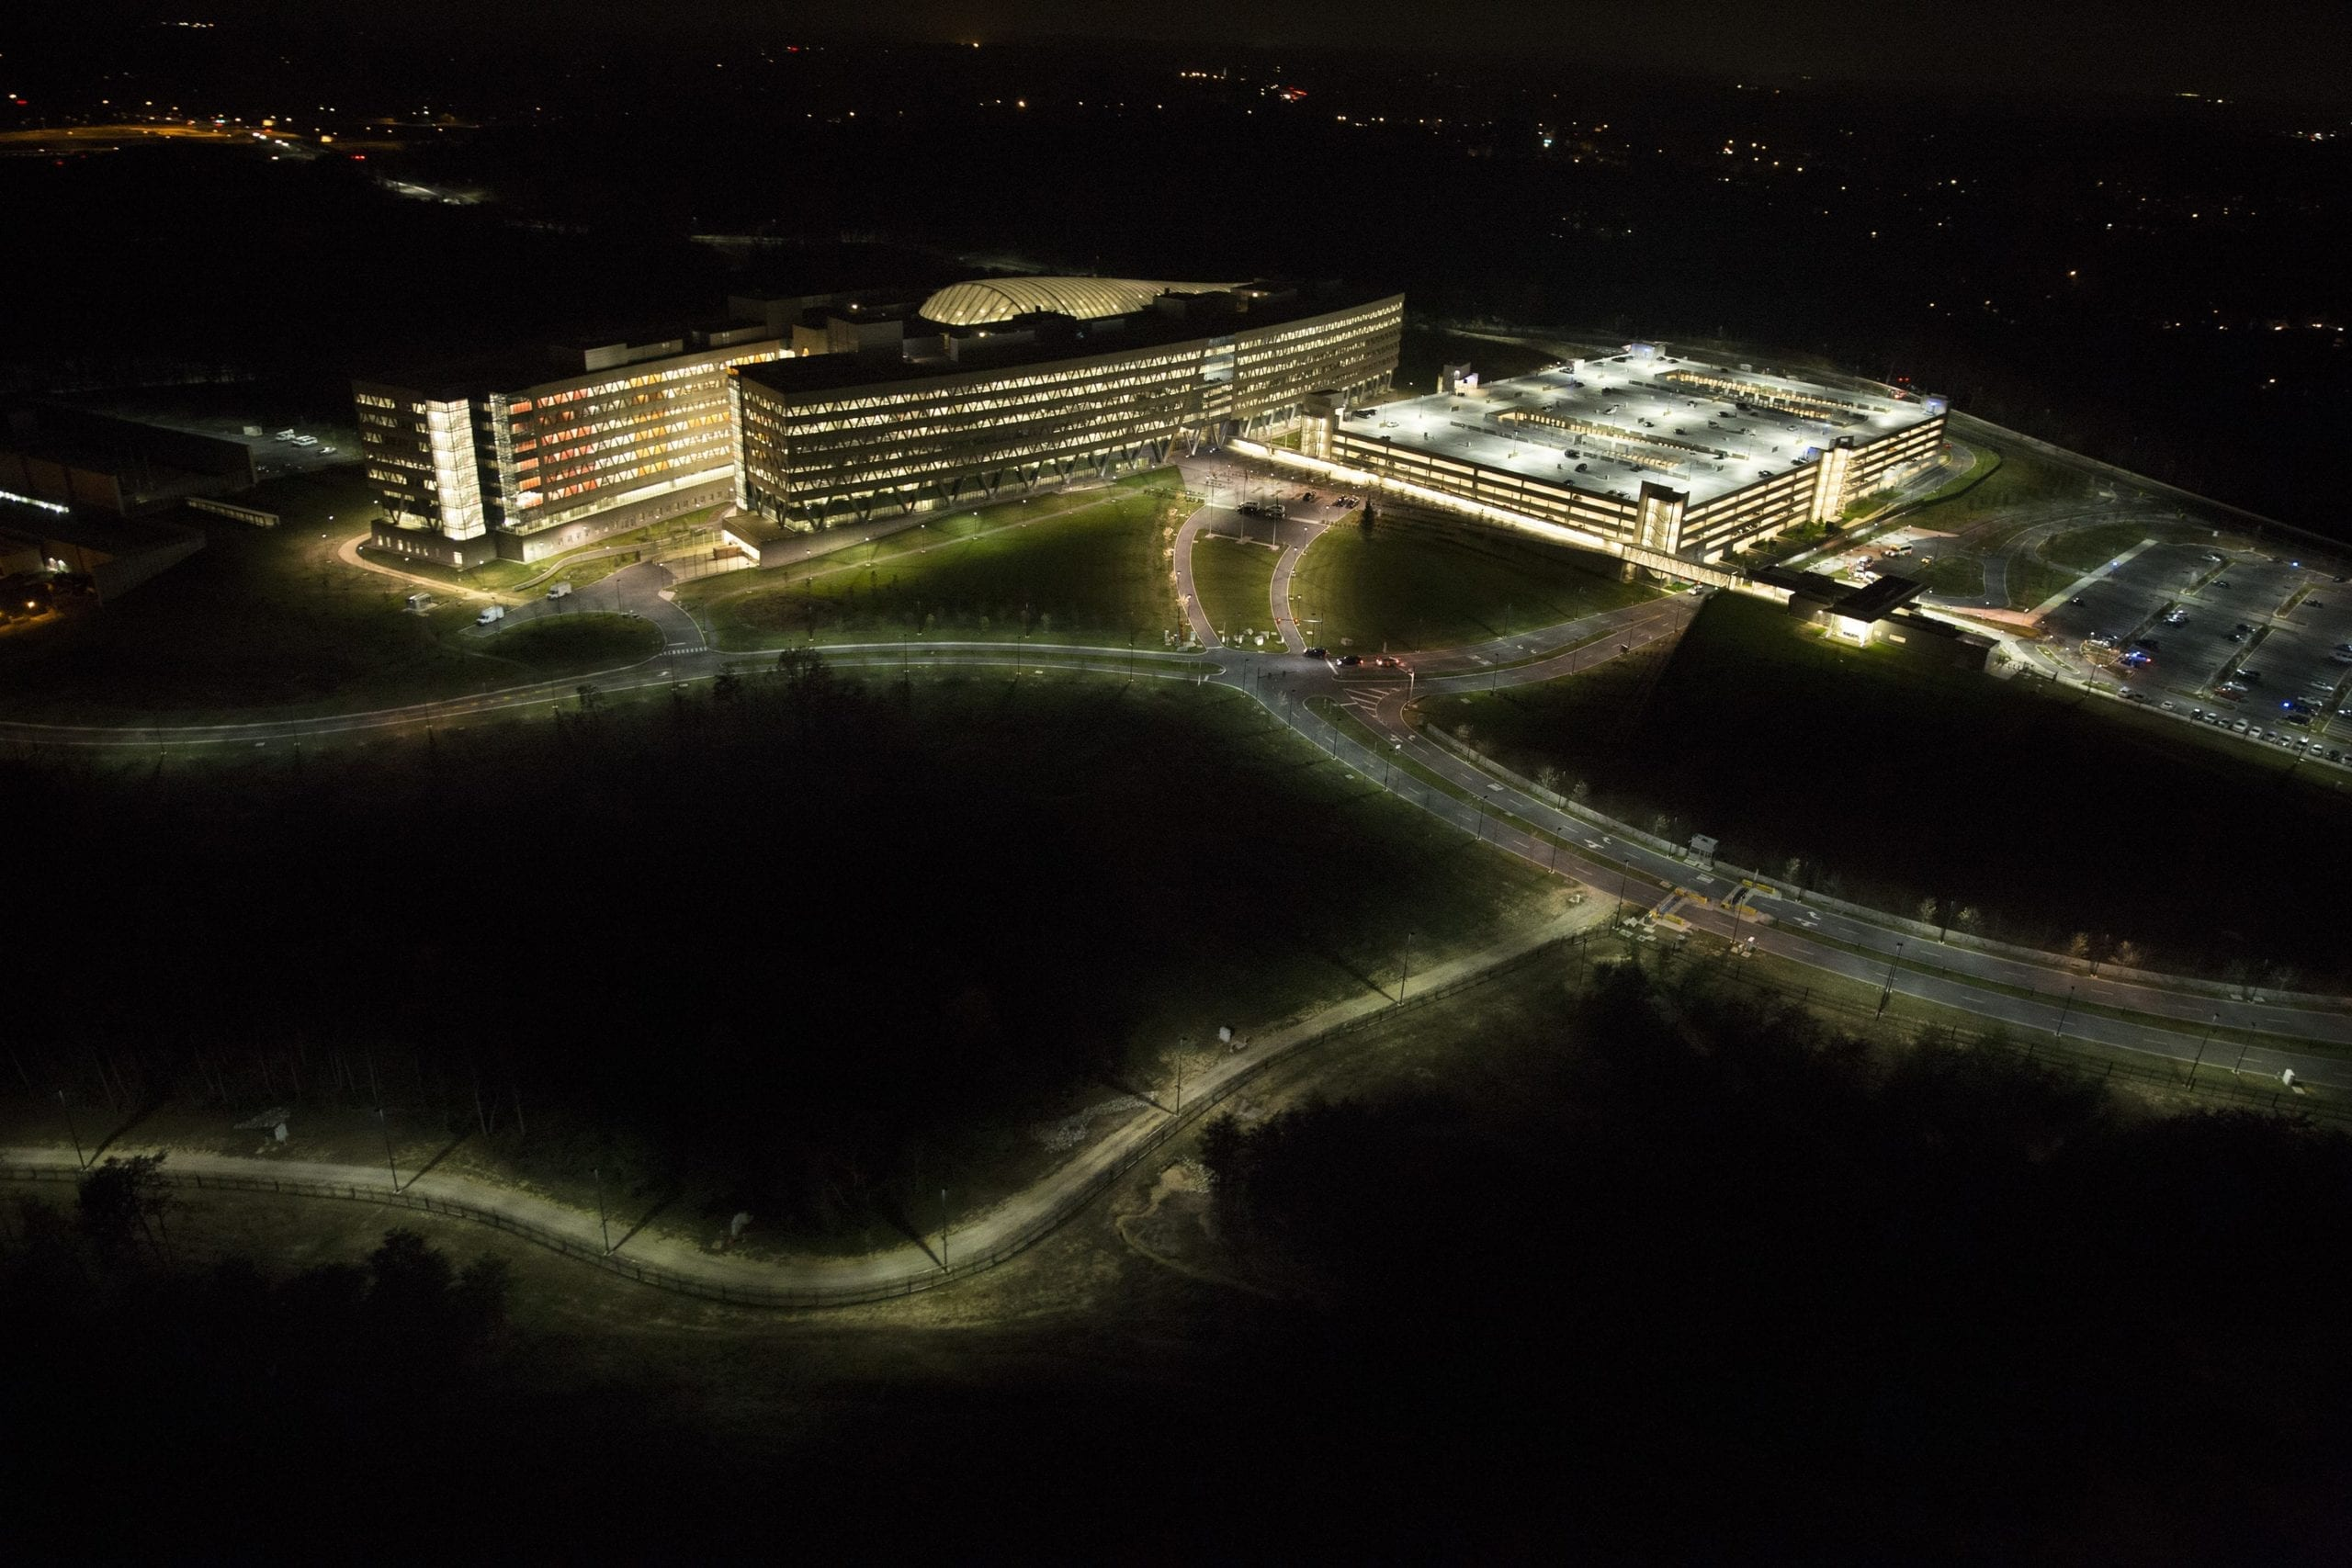 National_Geospatial-Intelligence_Agency,_2013